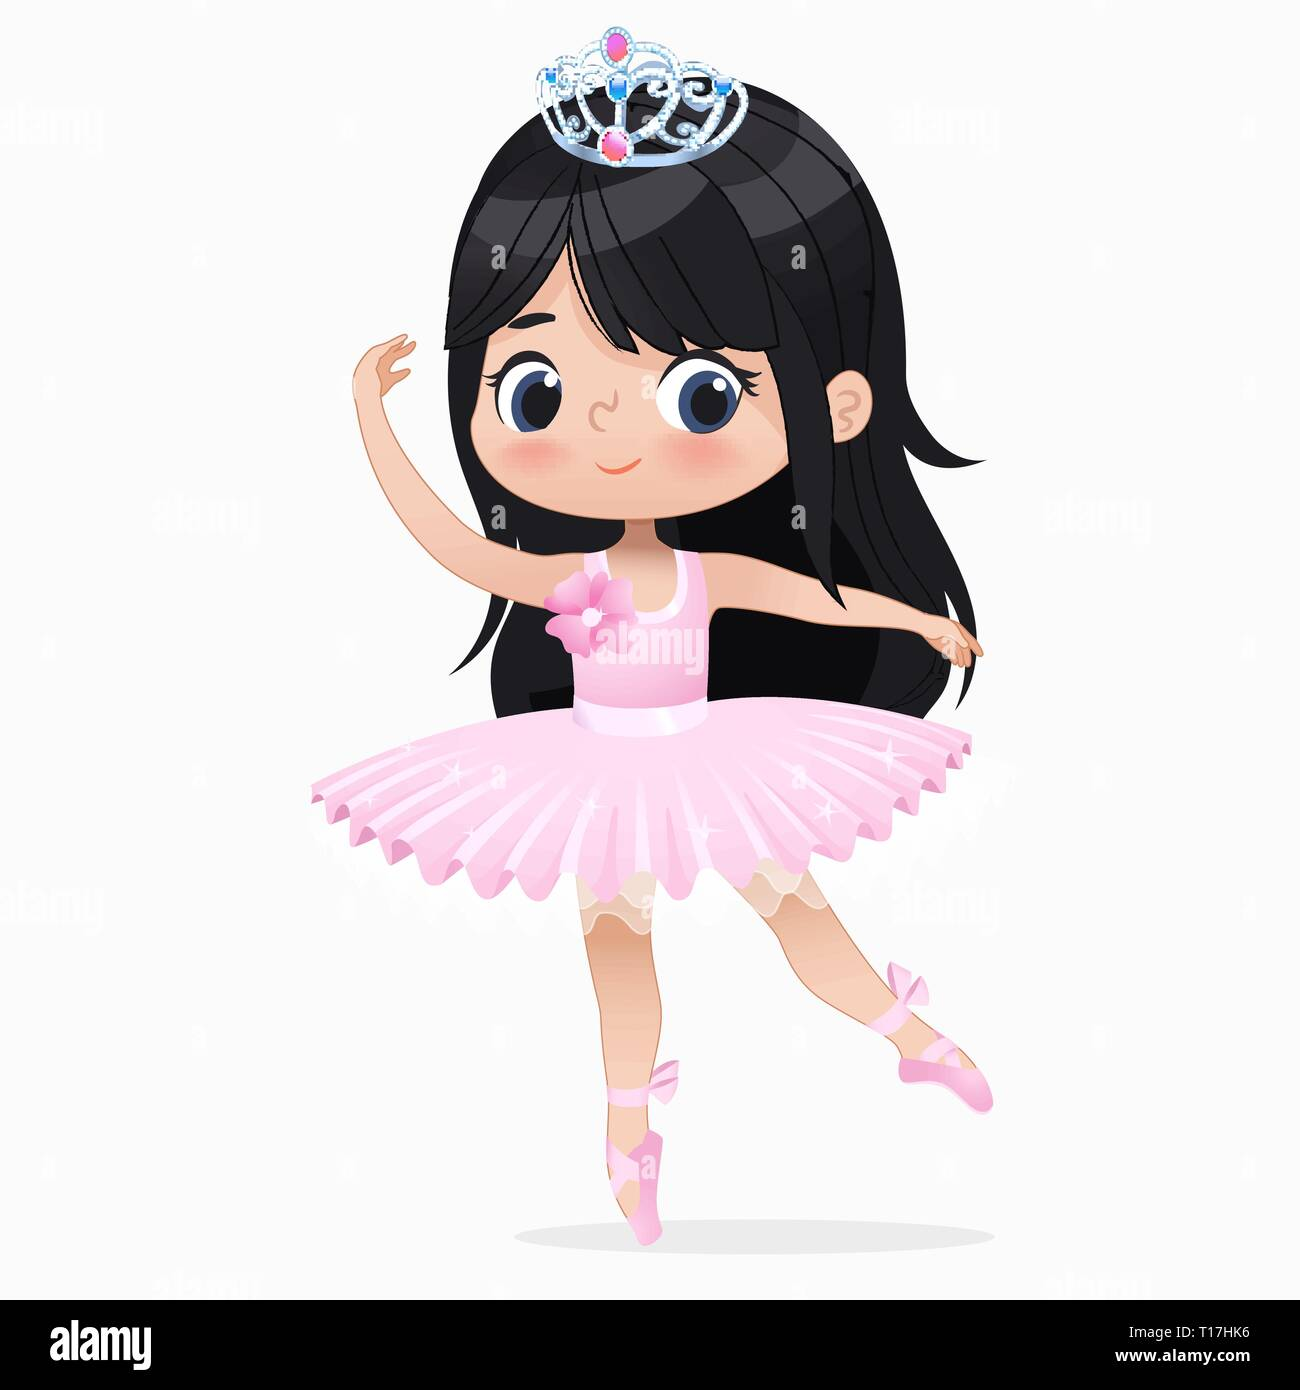 Dancer Cartoon High Resolution Stock Photography And Images Alamy